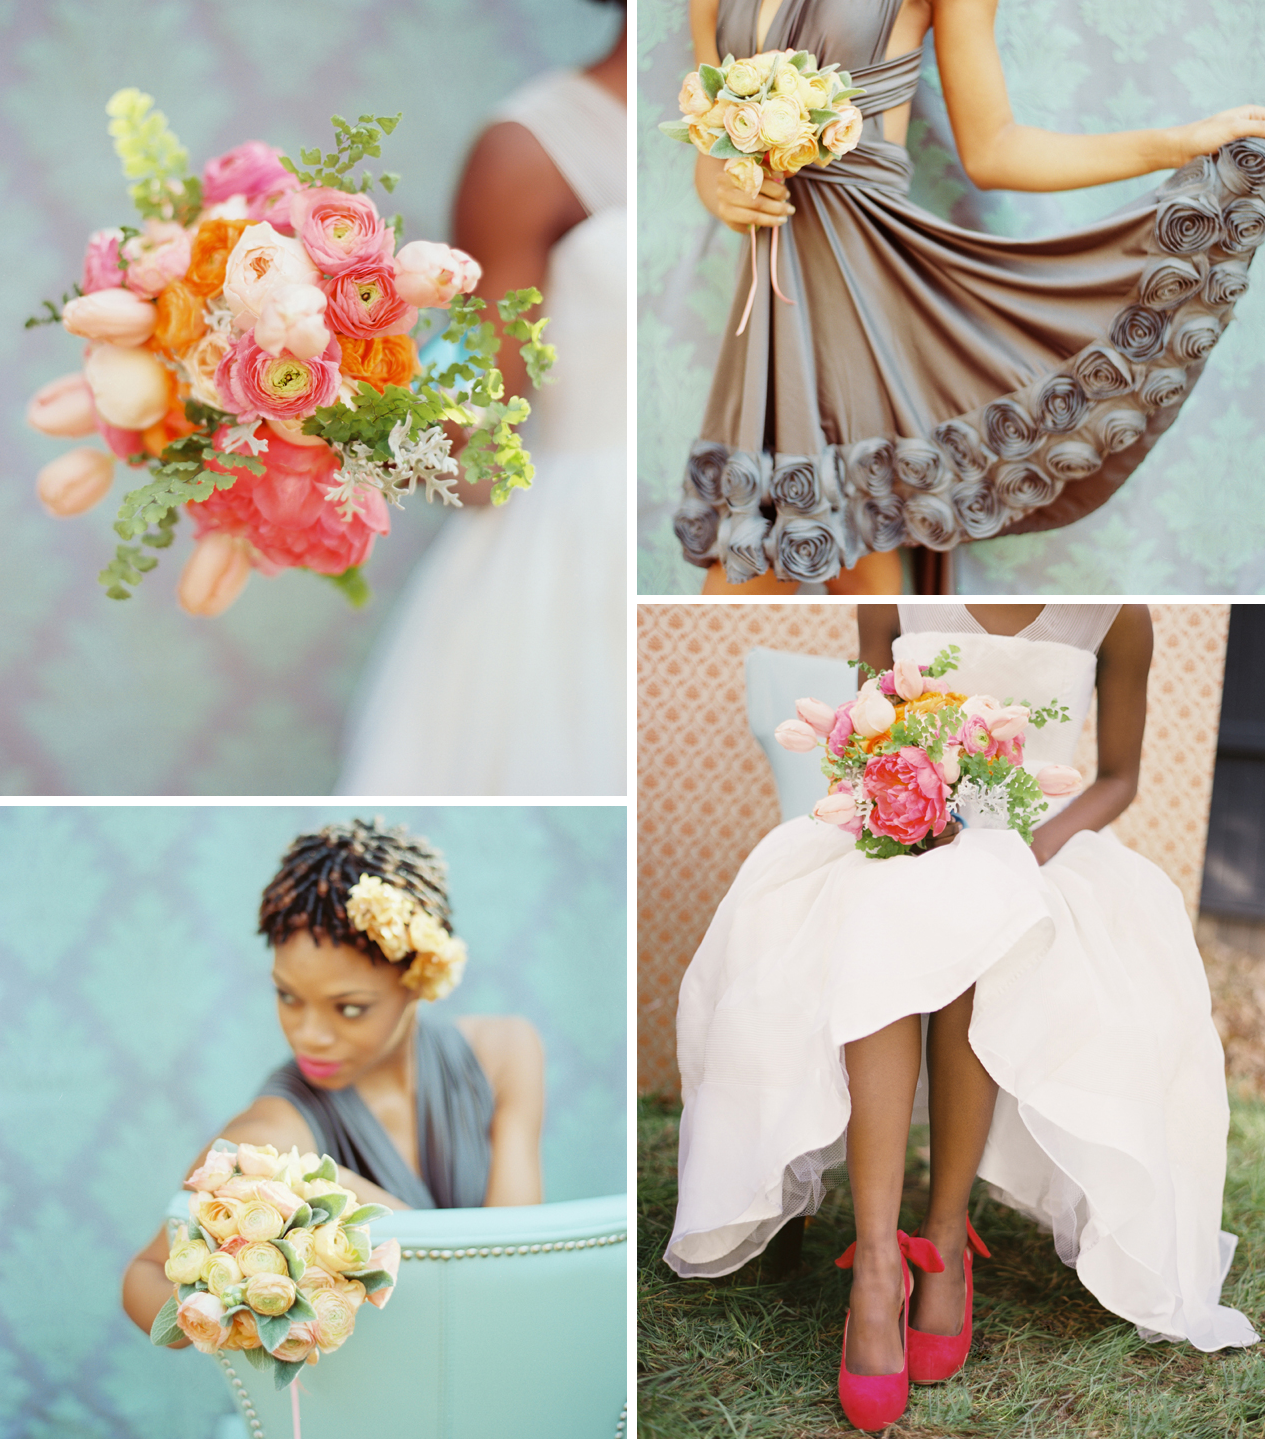 Romantic-wedding-flowers-anemones-tulips-peonies-bridal-bouquet-bridesmaids-flowers.original